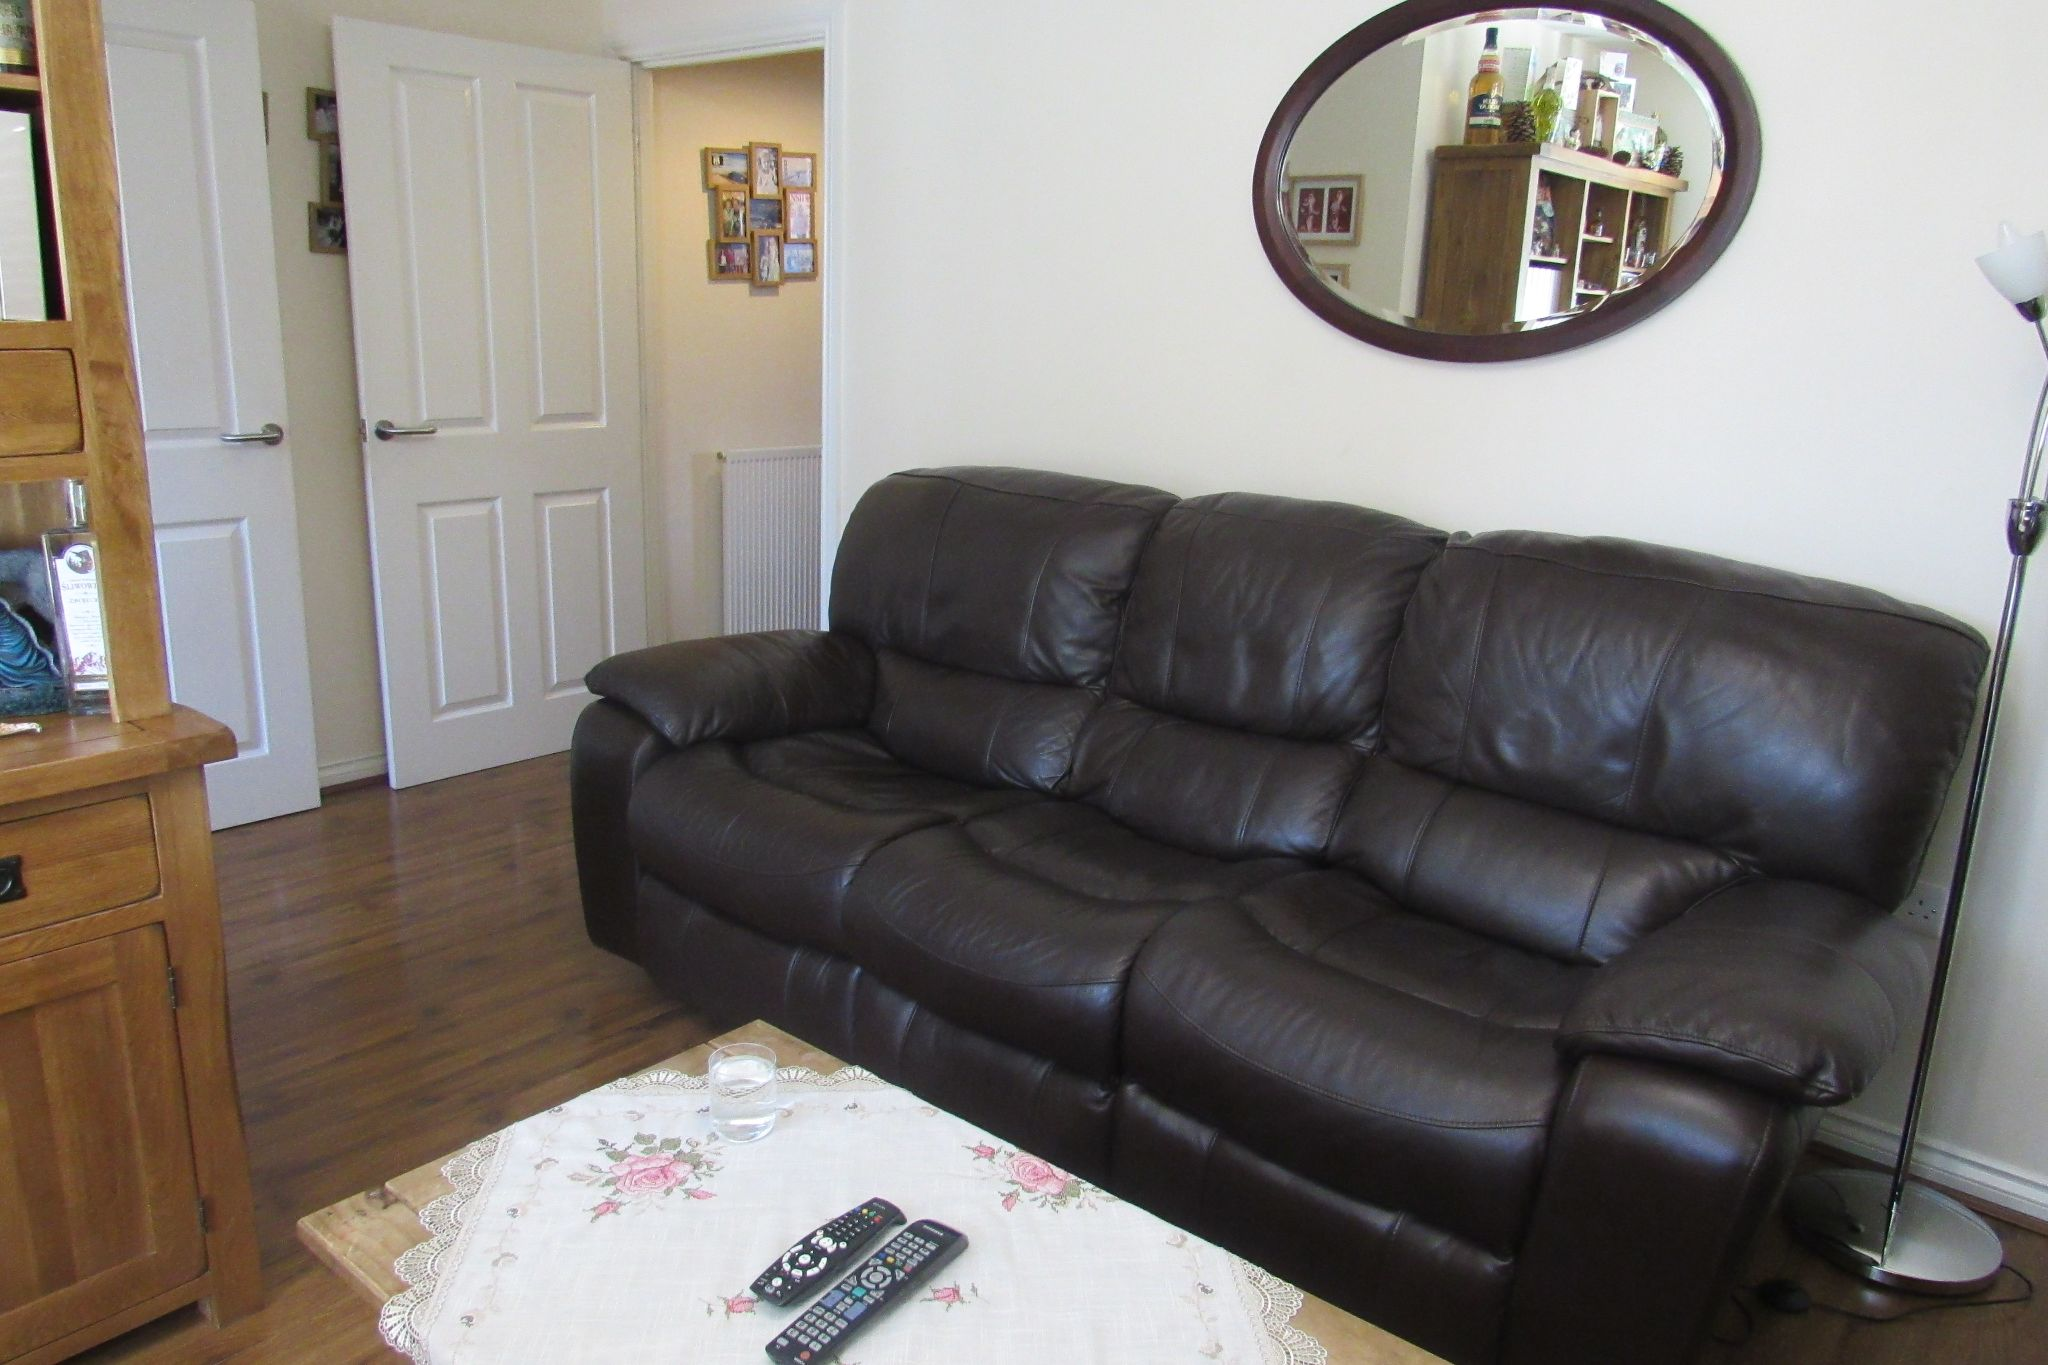 3 bedroom semi-detached house SSTC in Manchester - Photograph 4.